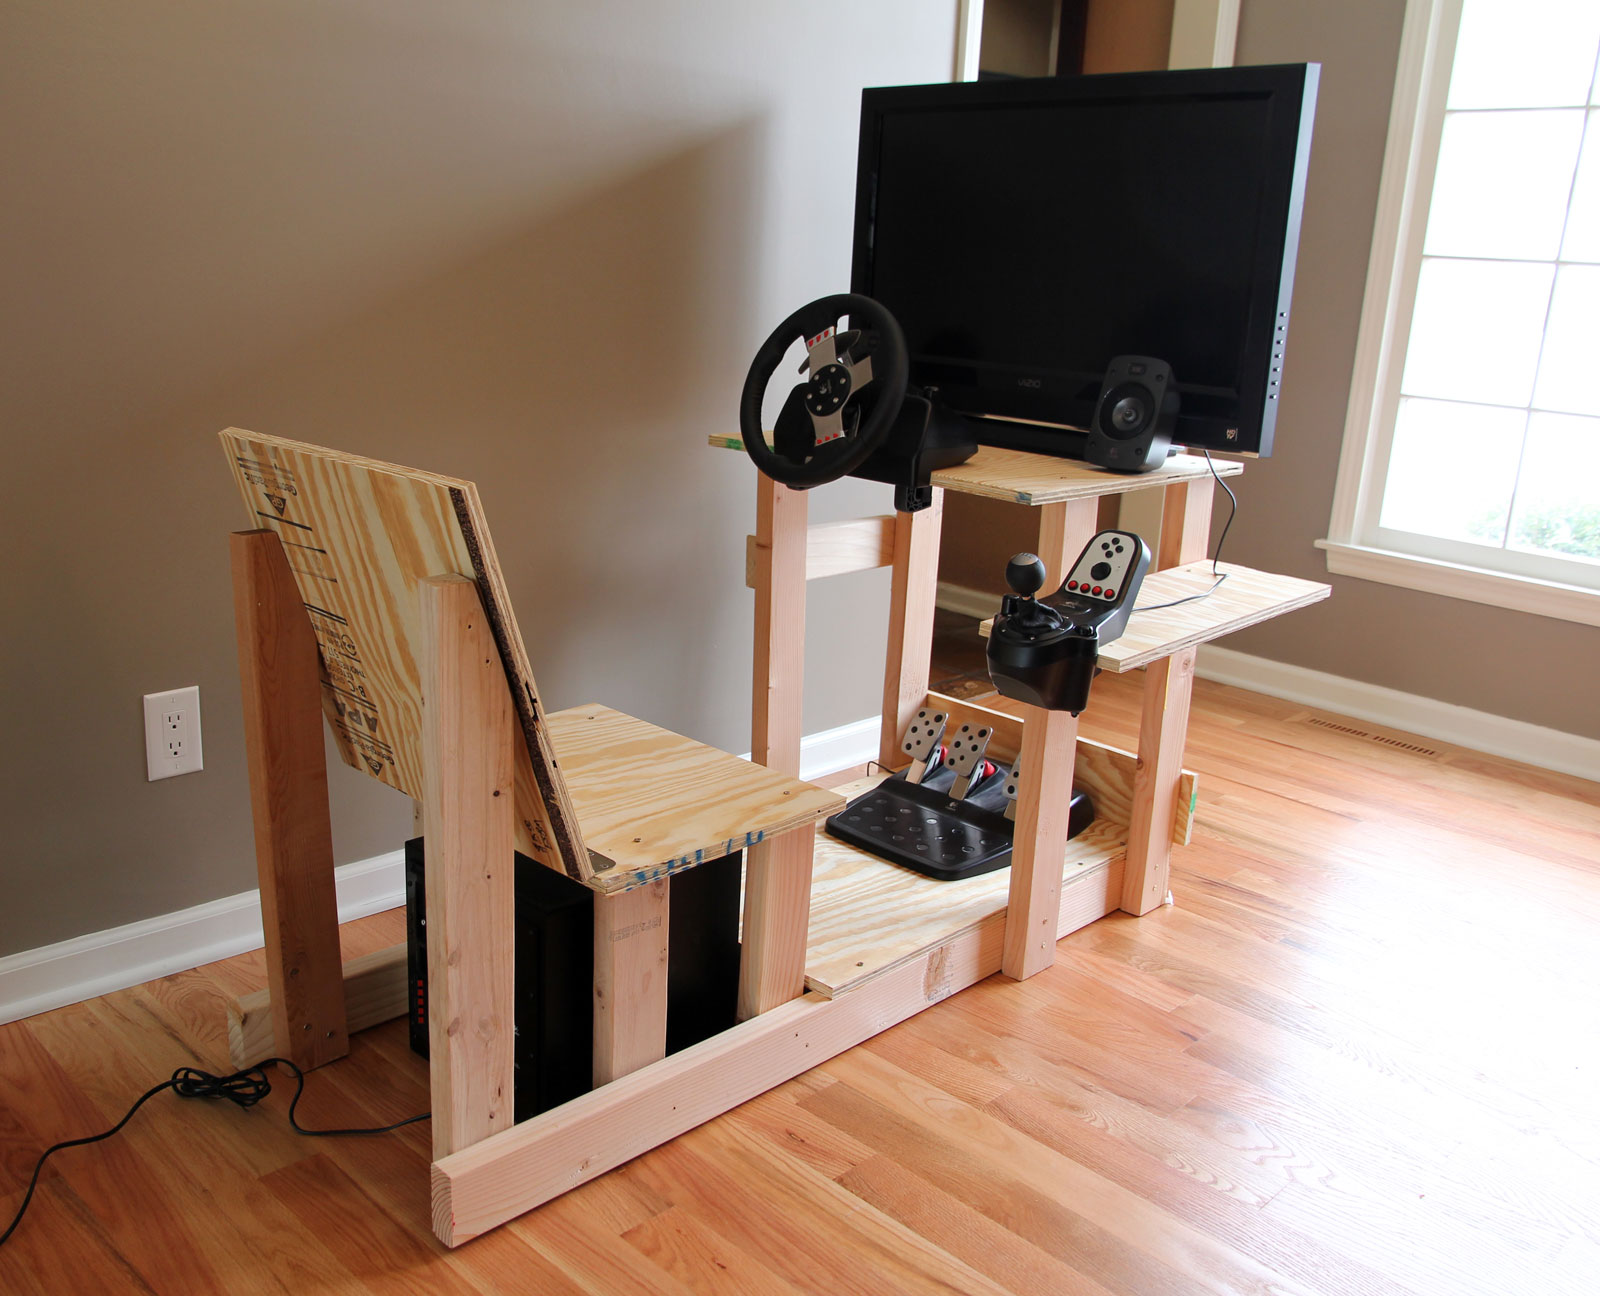 Unpainted chair with plywood seat and gaming hardware